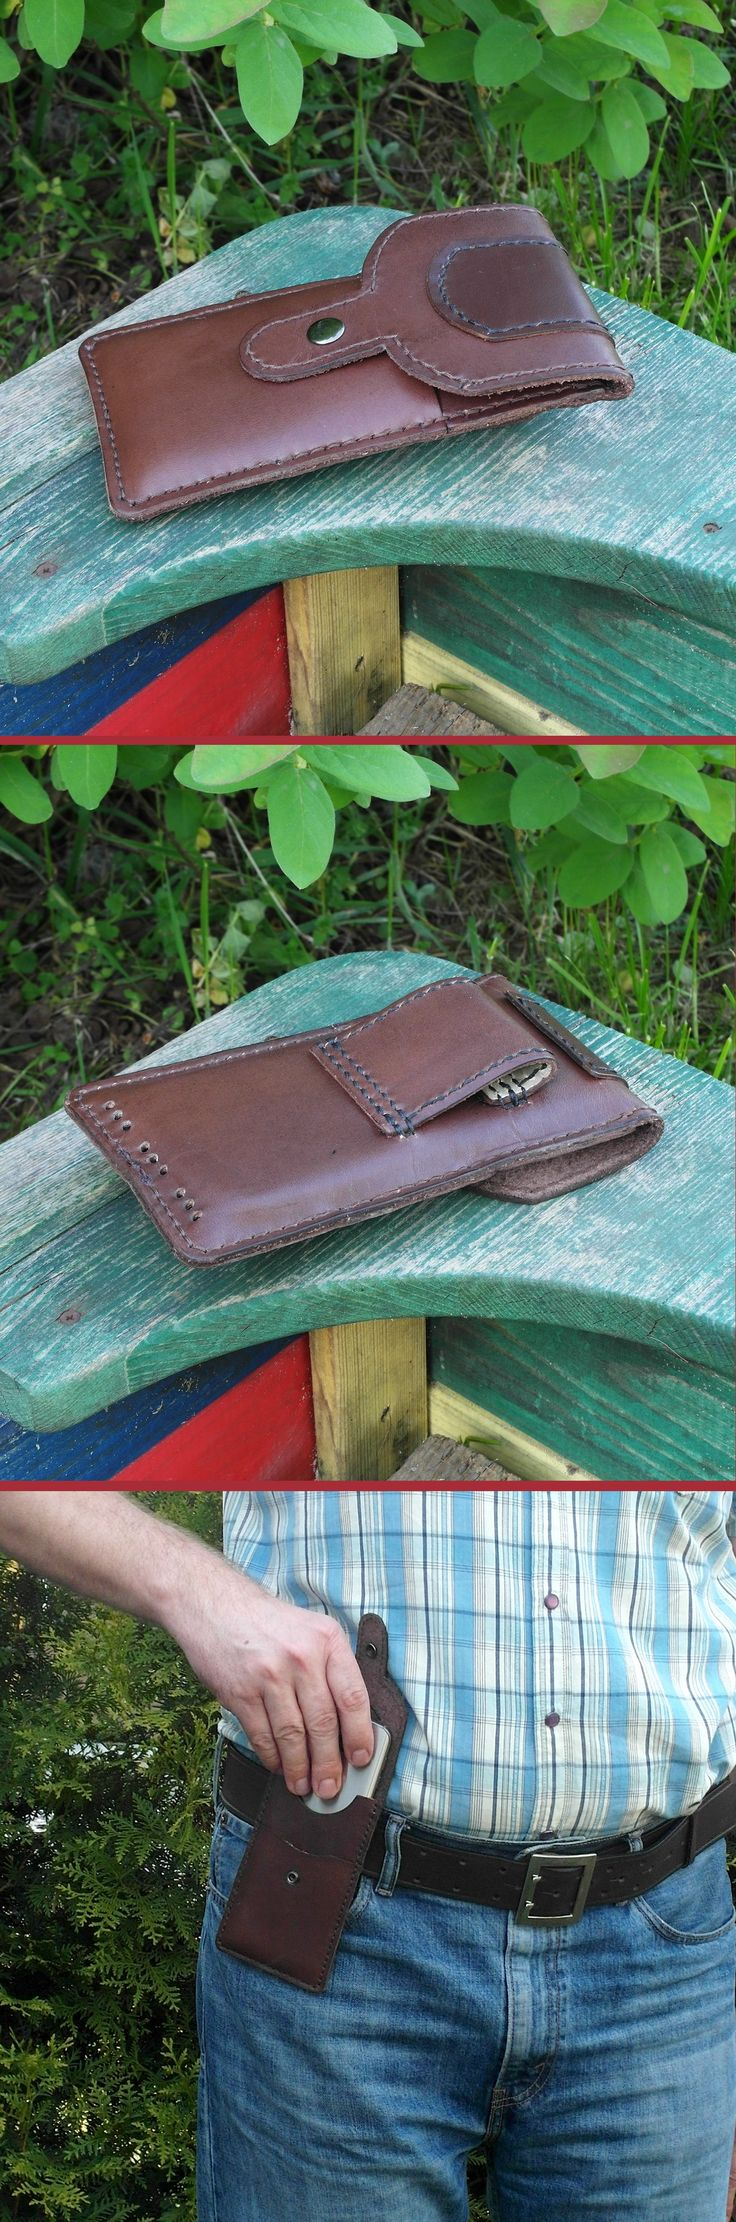 Handmade and hand stitched made of genuine leather - cowhide - belt pouch with card pocket for mobile phones